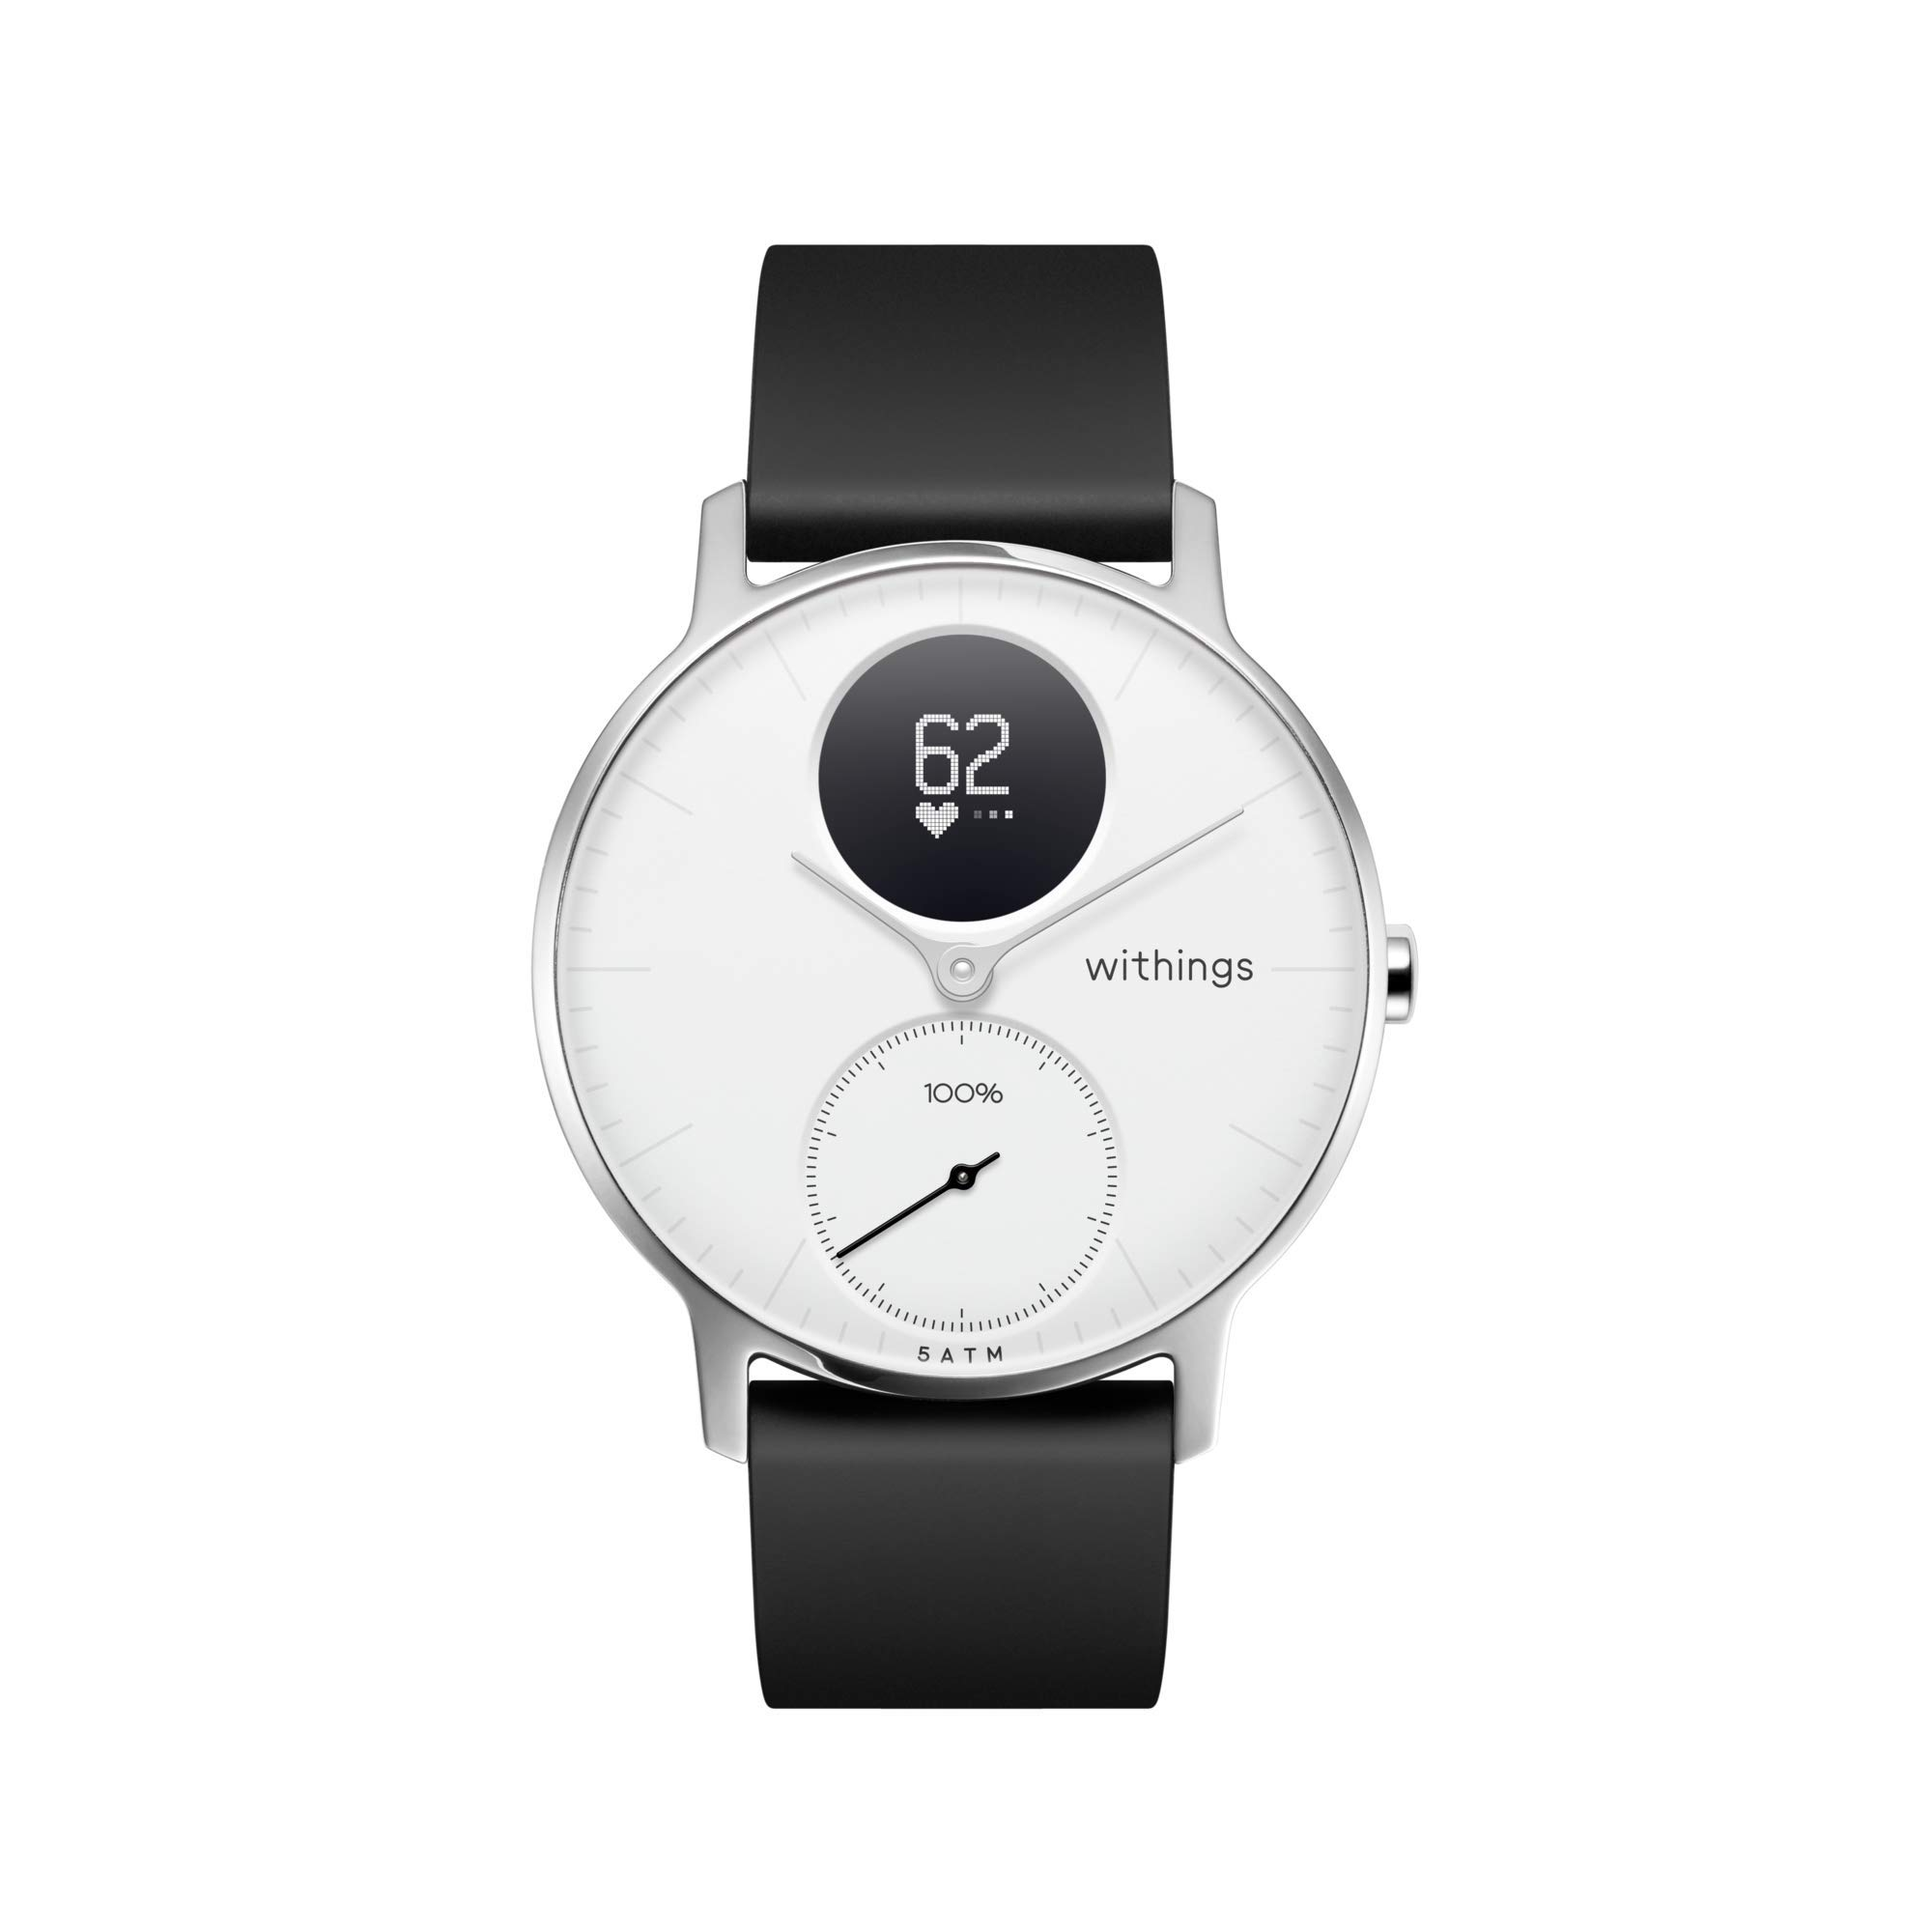 Withings Steel HR Hybrid Smartwatch - Activity, Fitness and Heart Rate Tracker with Connected GPS by Withings